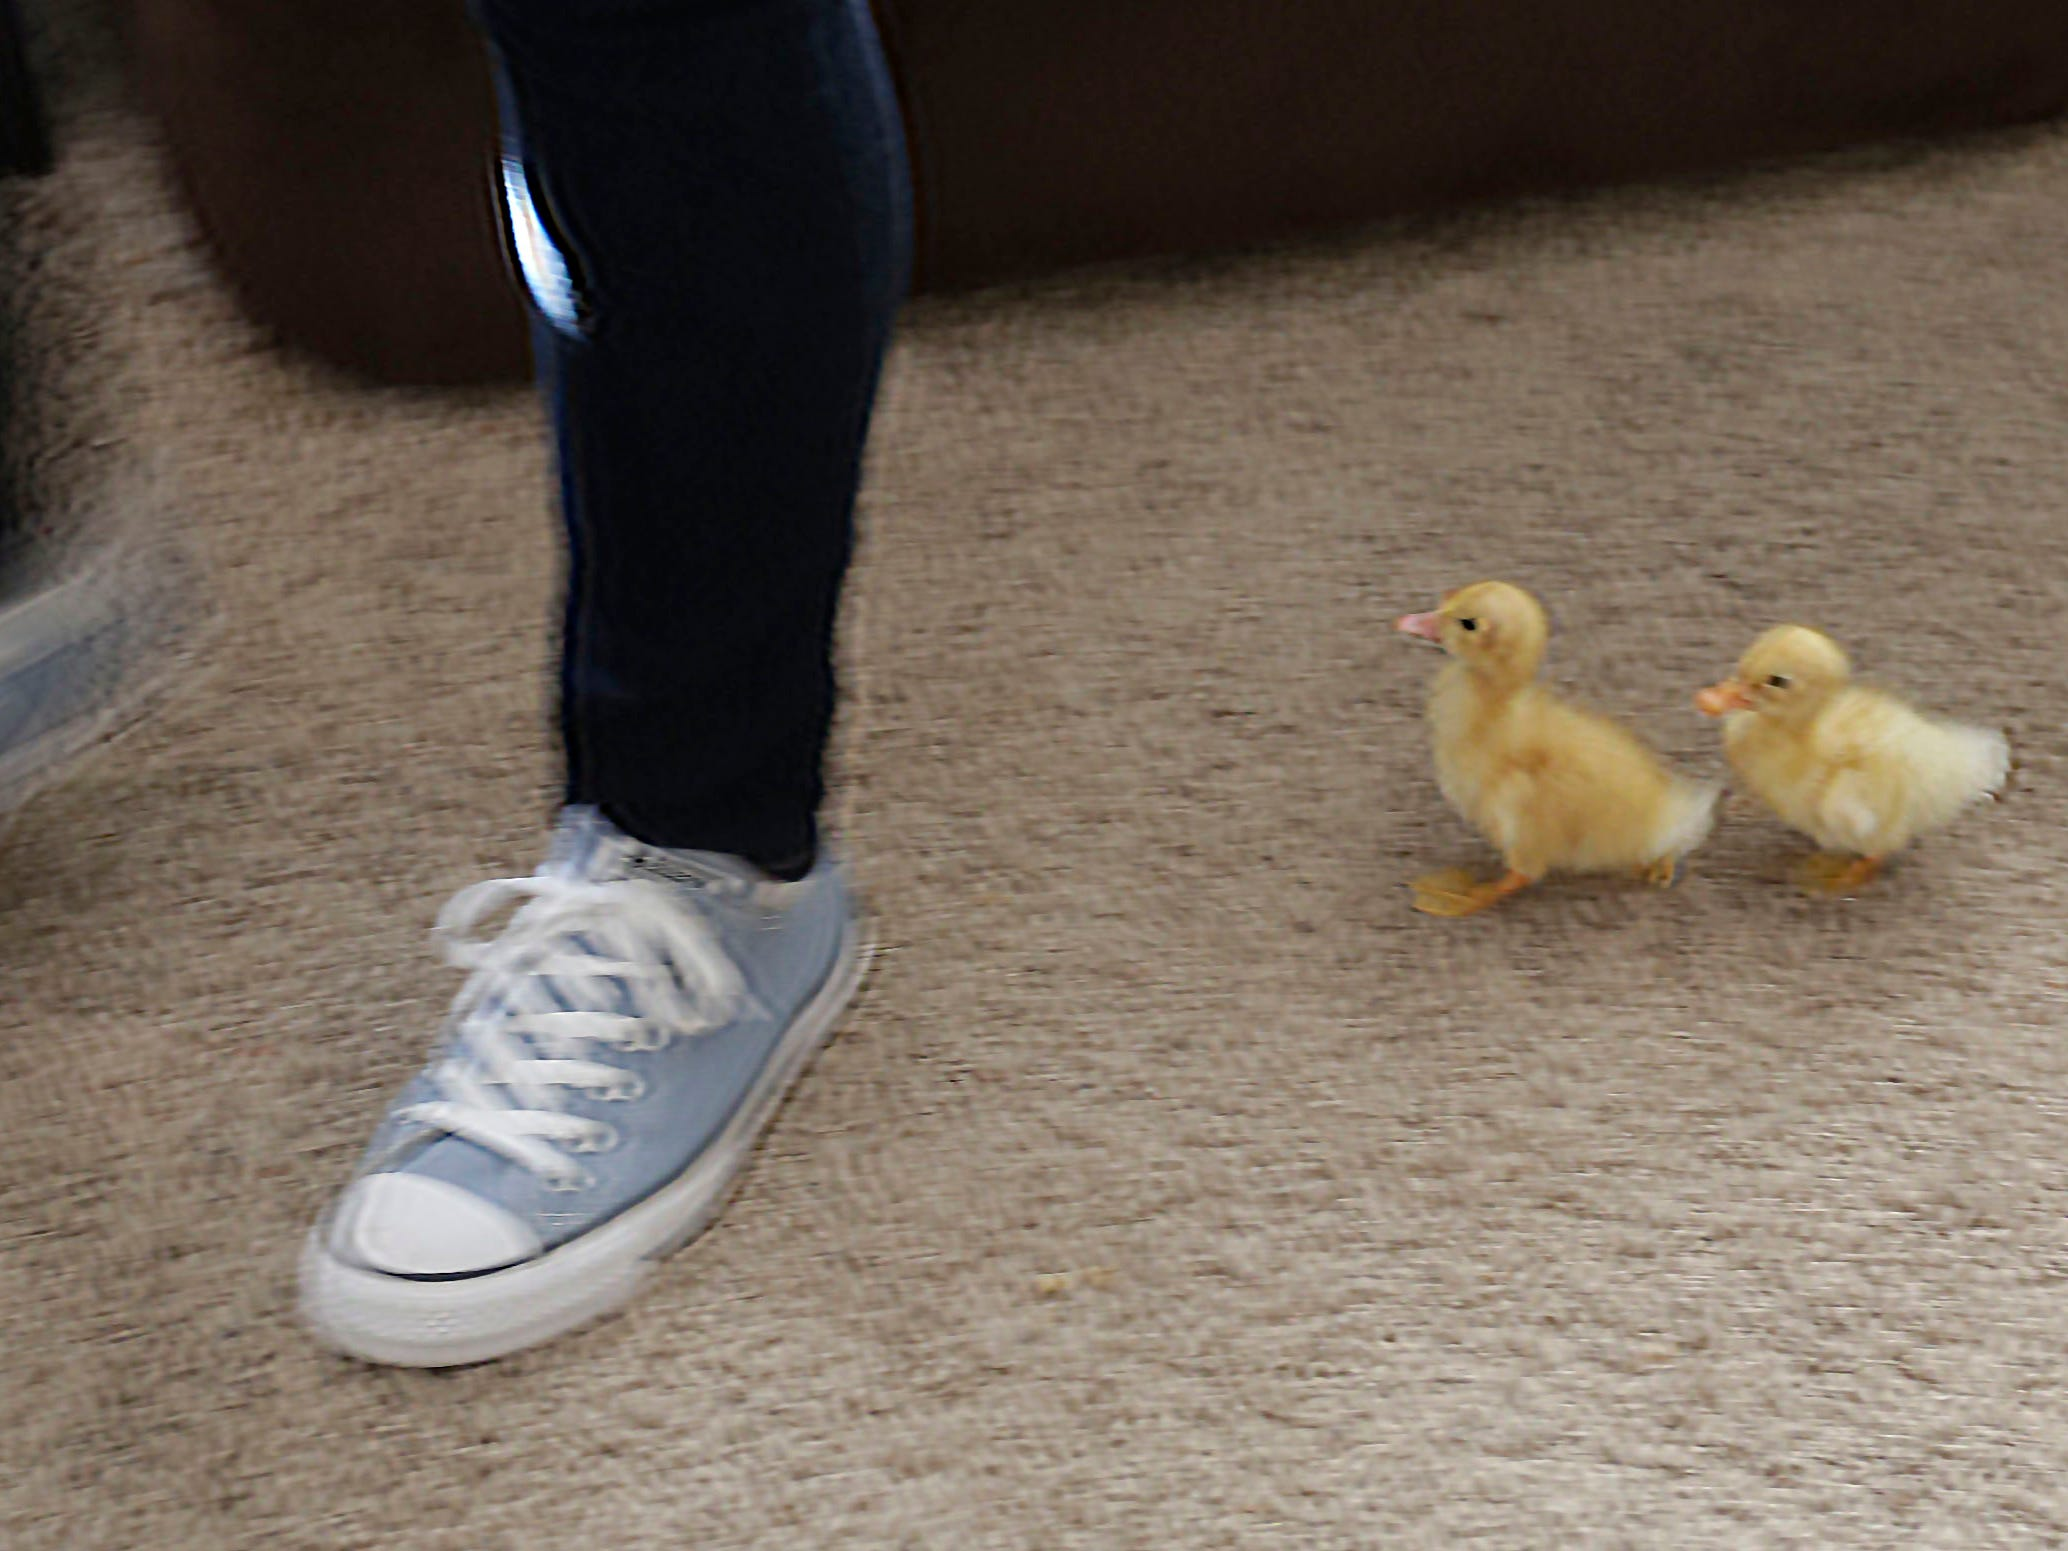 Ducklings Squeak, left, and Pip, follow owner Kelly Brotz as she walks in her living room, Wednesday, March 6, 2019, in Sheboygan, Wis.